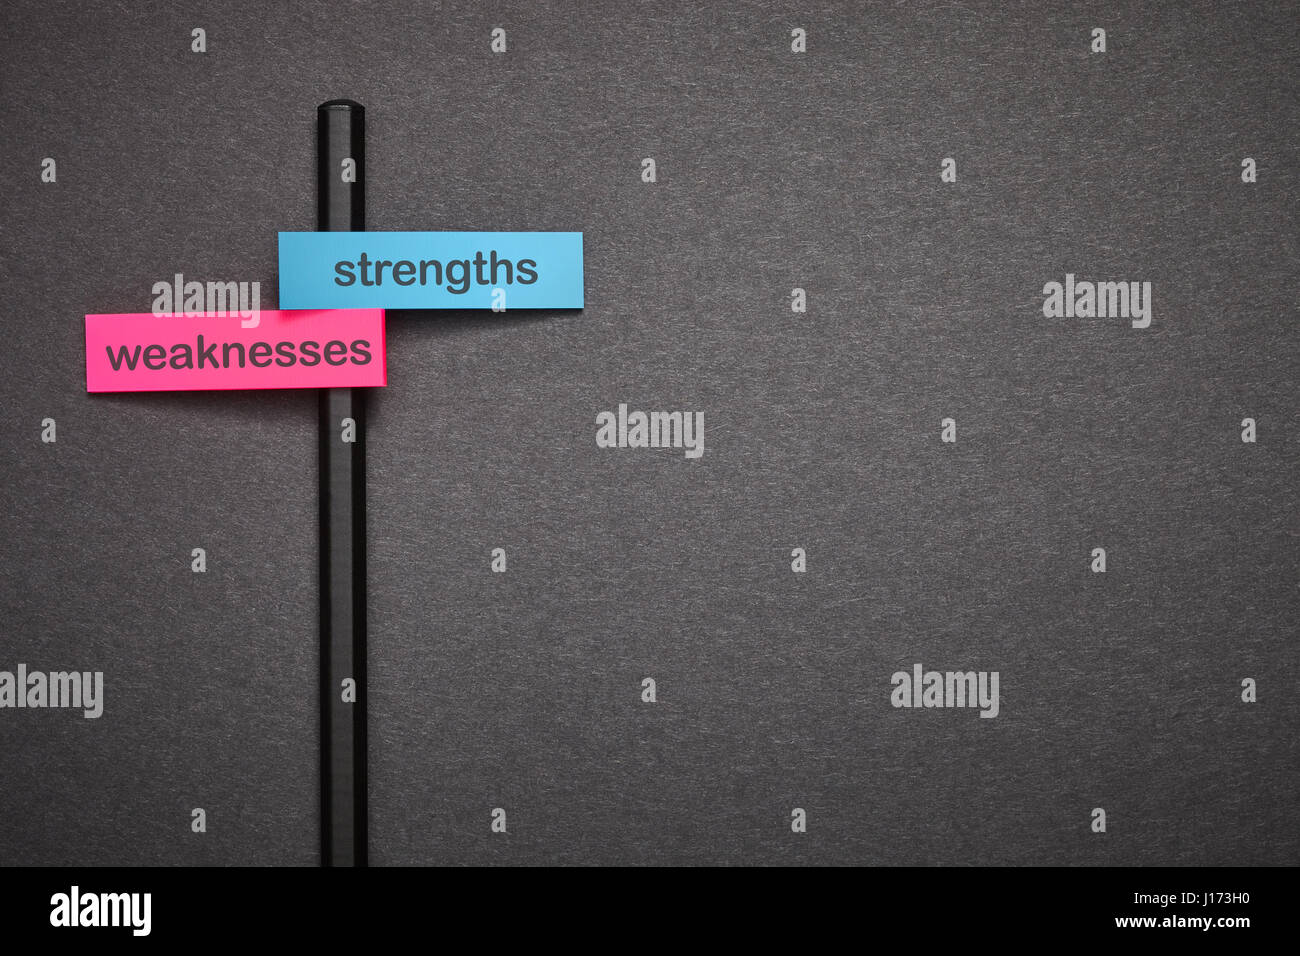 strengths weaknesses - Stock Image